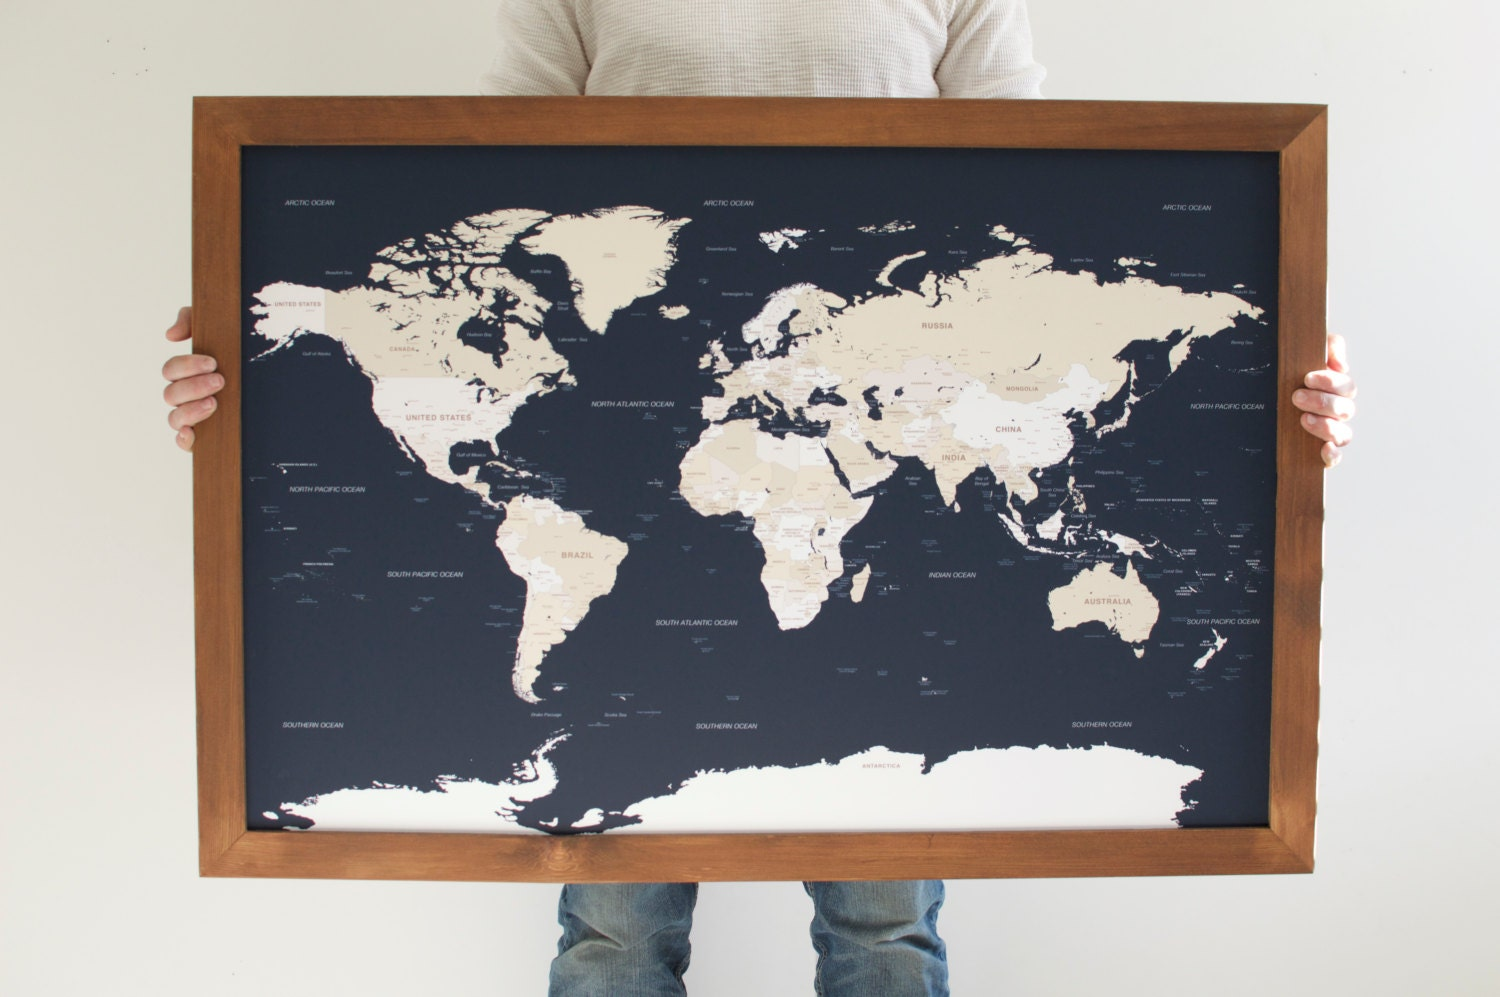 push pin travel map world map framed world map navy blue map world map wedding world push pin map 24x36 christmas gifts for men